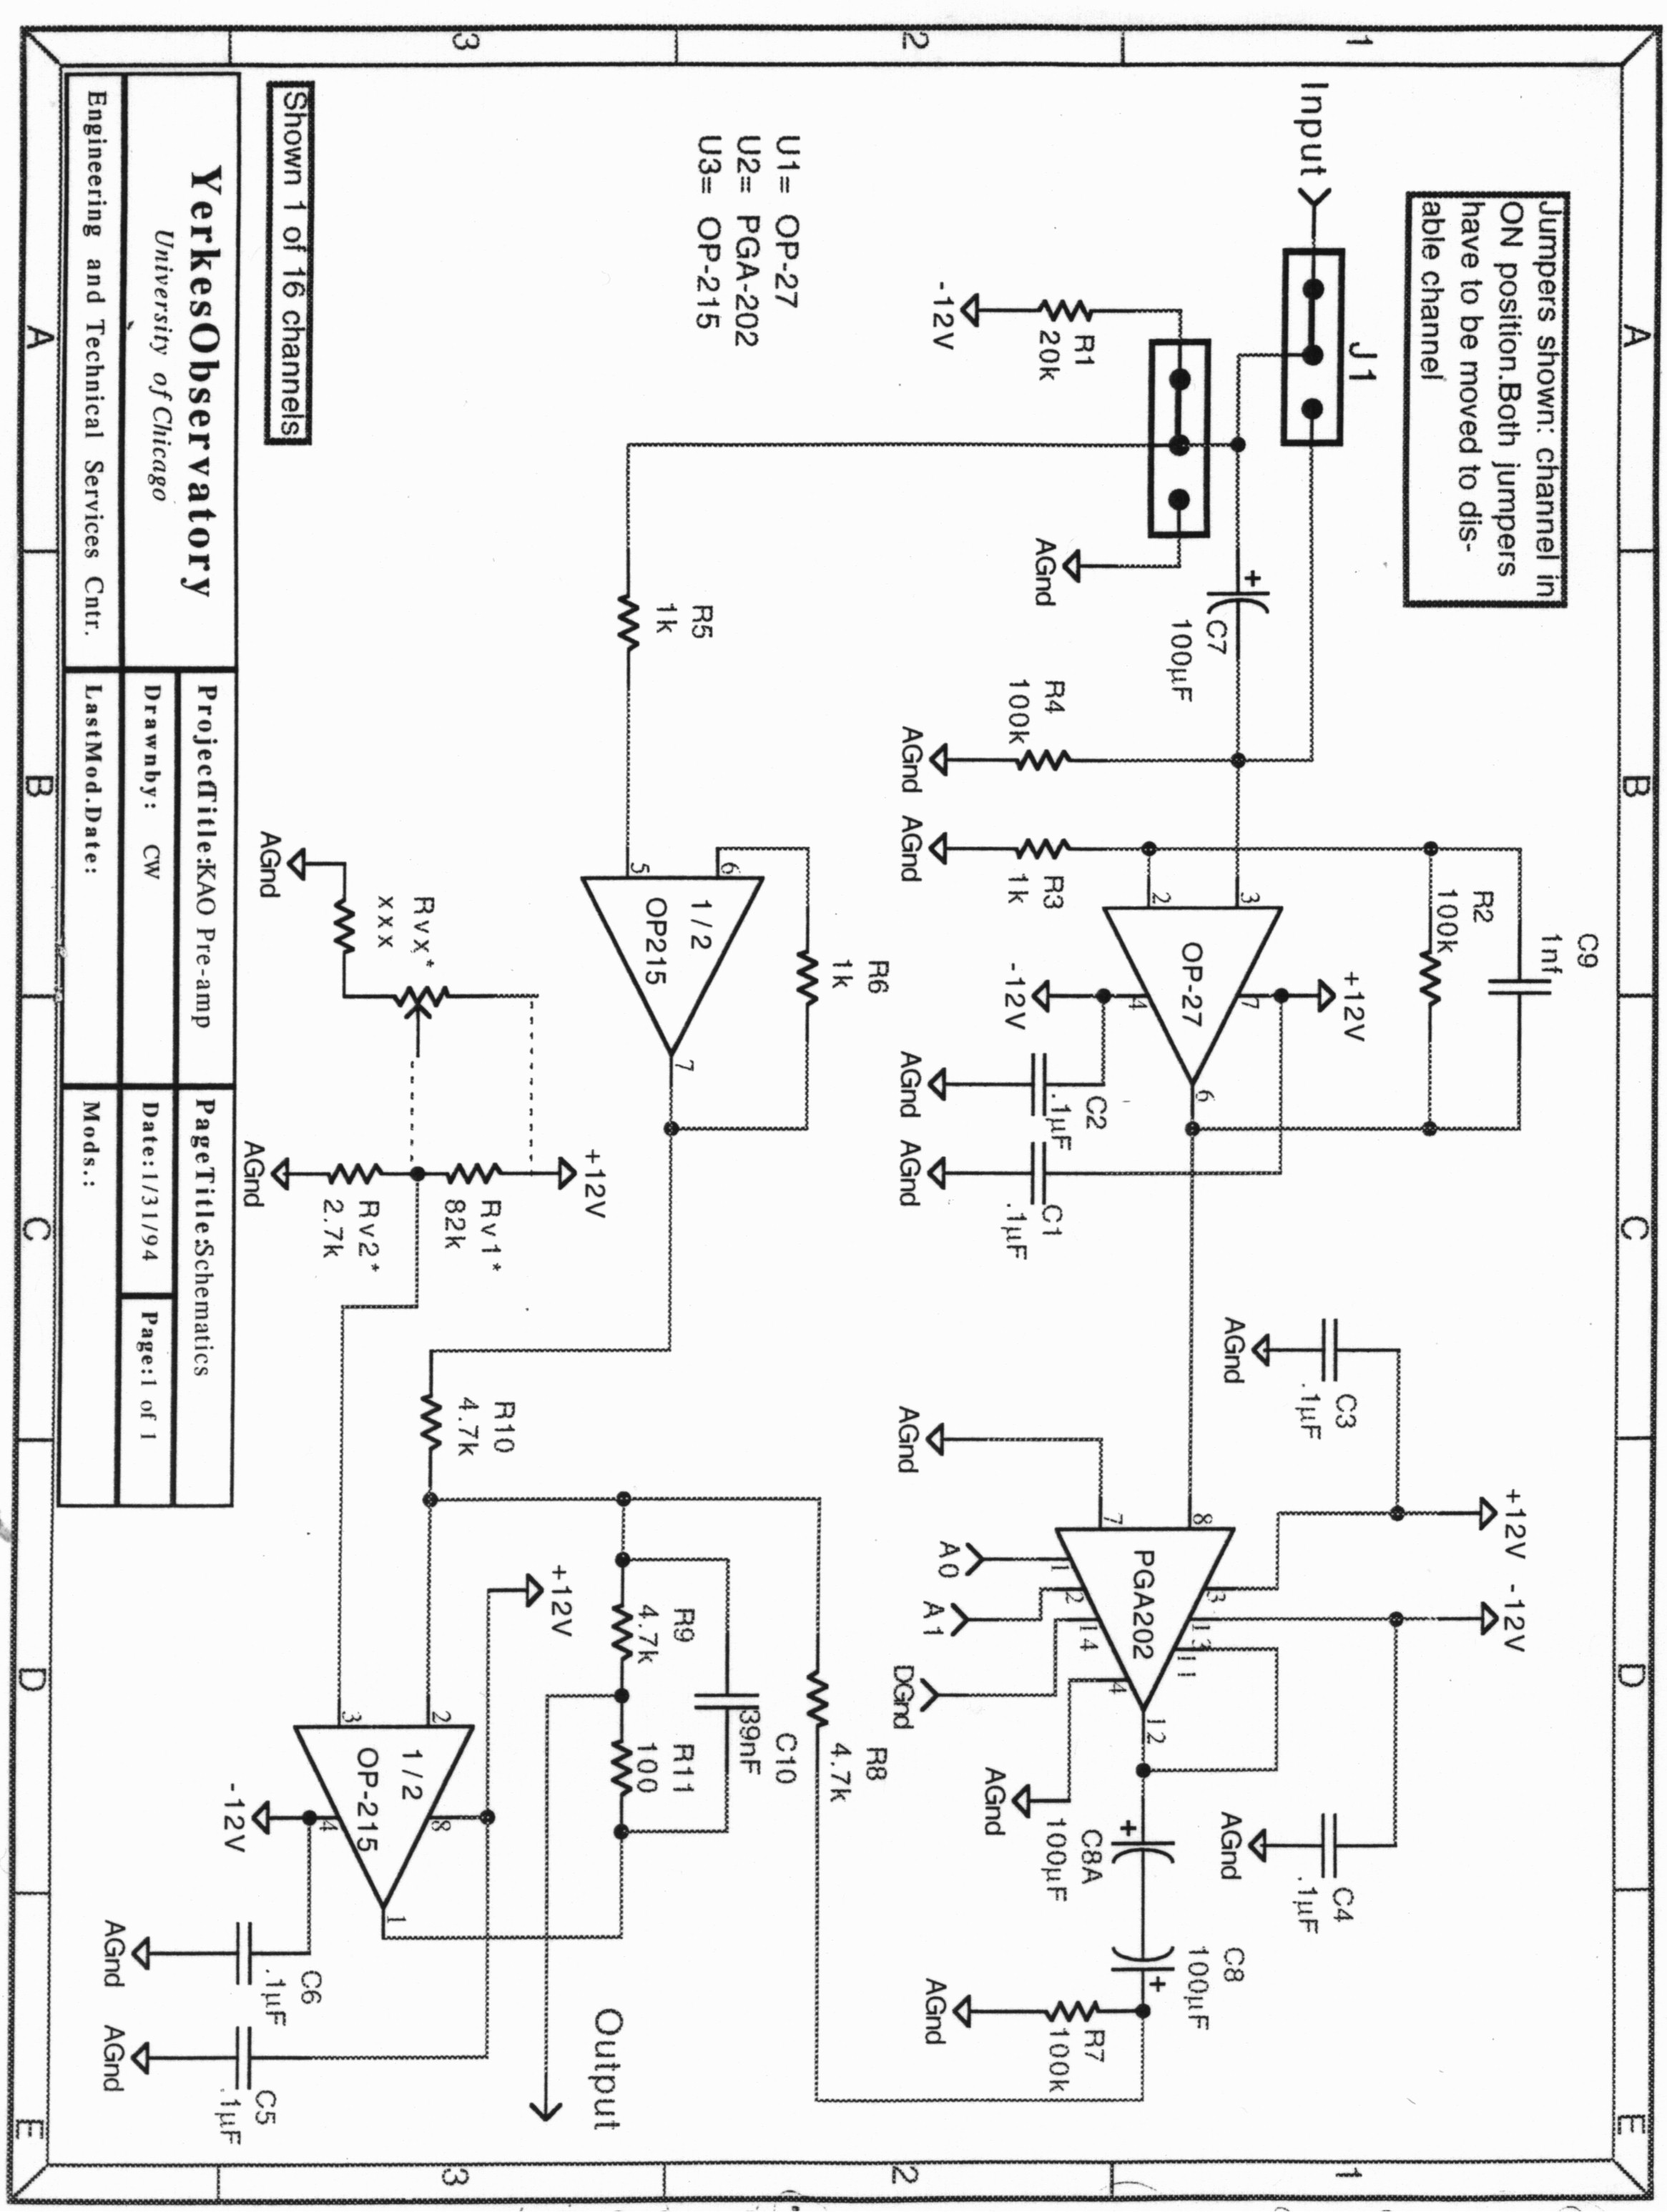 1974 Jensen Interceptor Wiring Diagram Mercury Zephyr